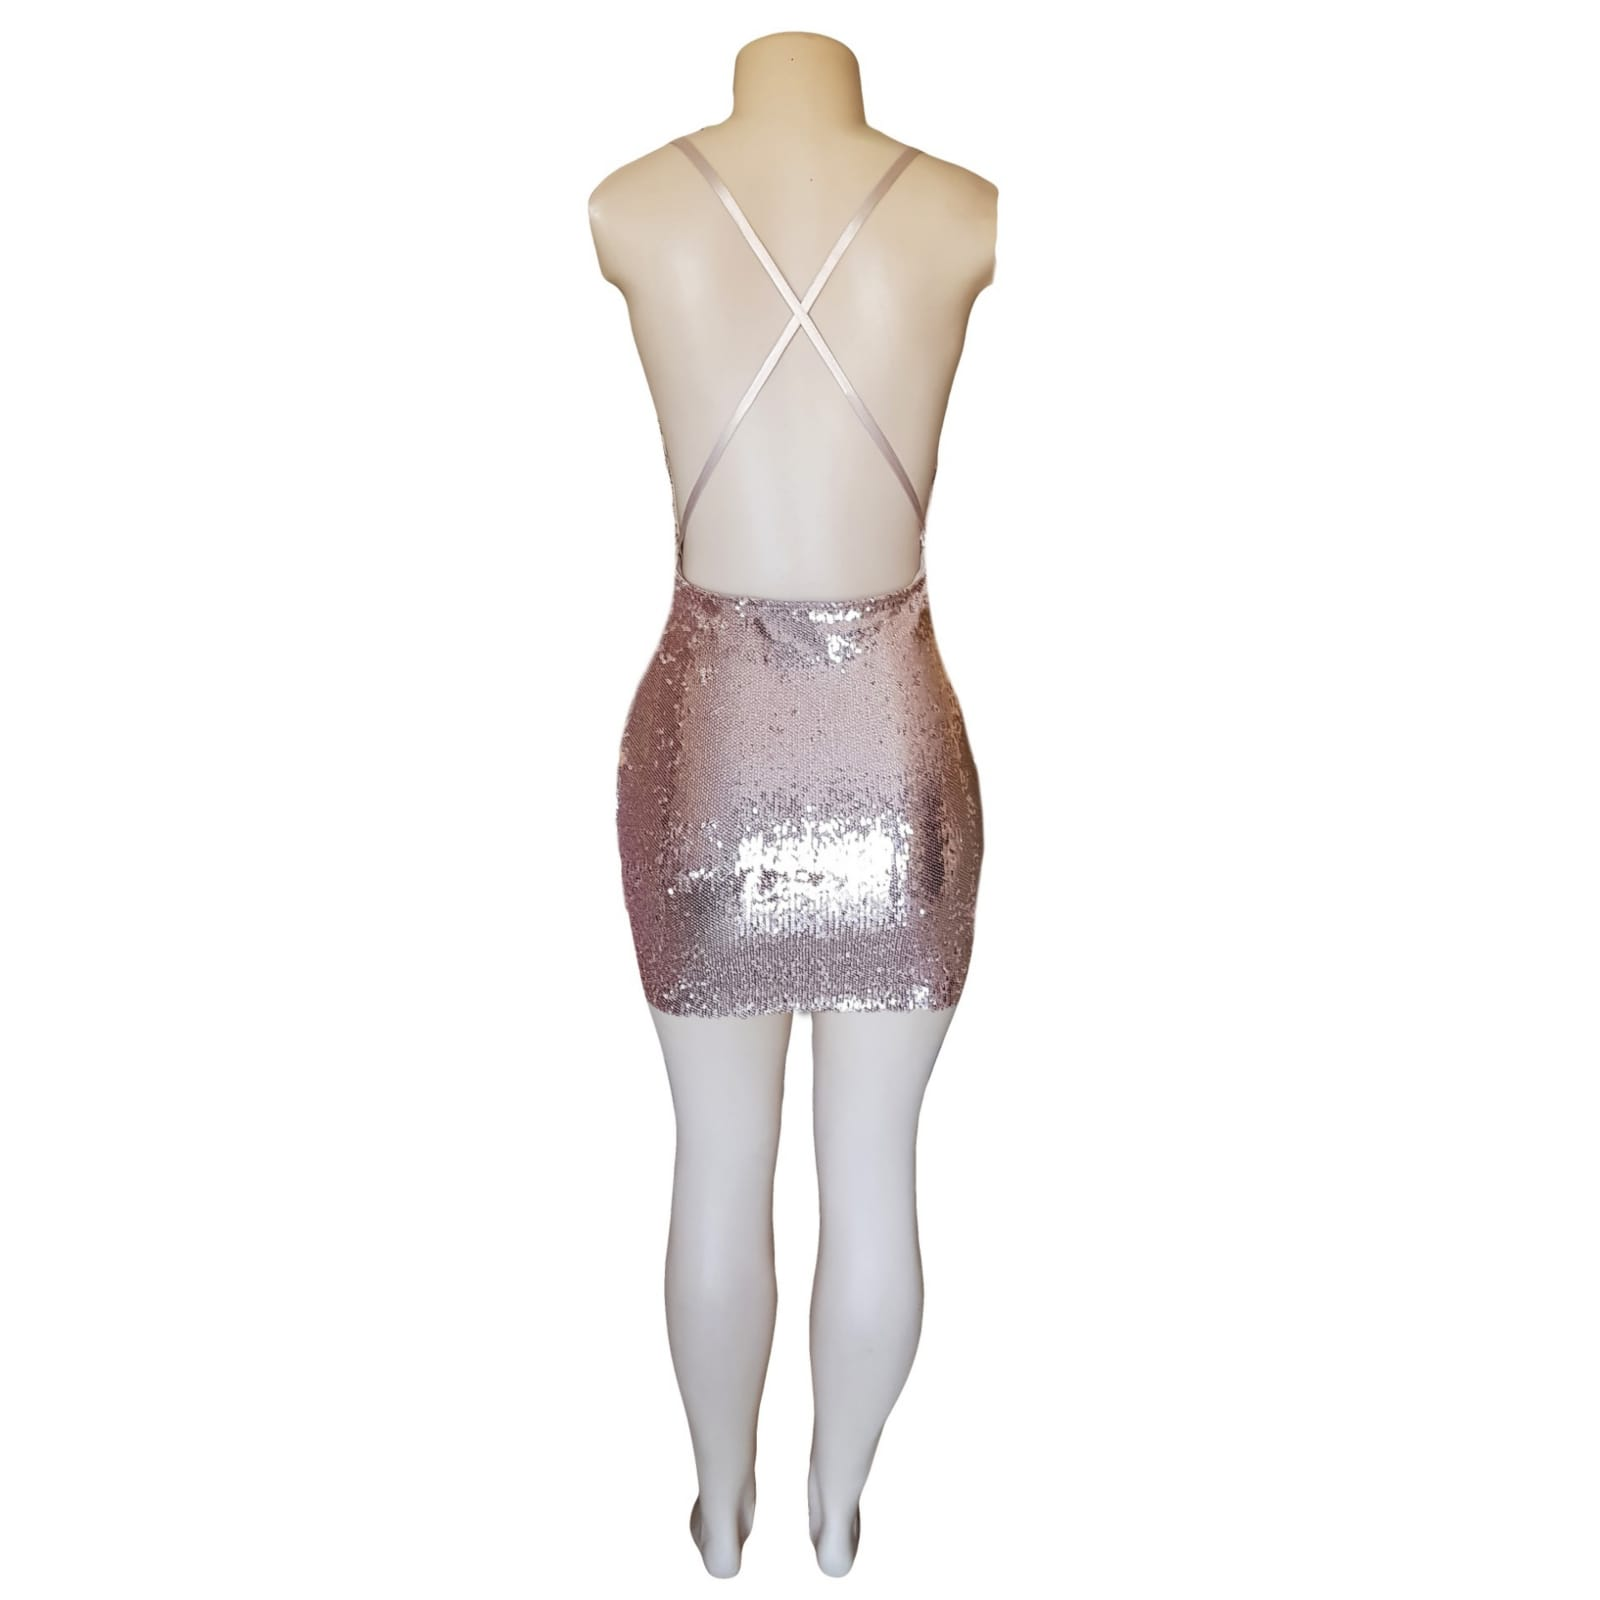 Short mini rose gold fully sequins smart casual dress 5 short mini rose gold fully sequins smart casual dress with a low open back and thin crossed spaghetti straps.